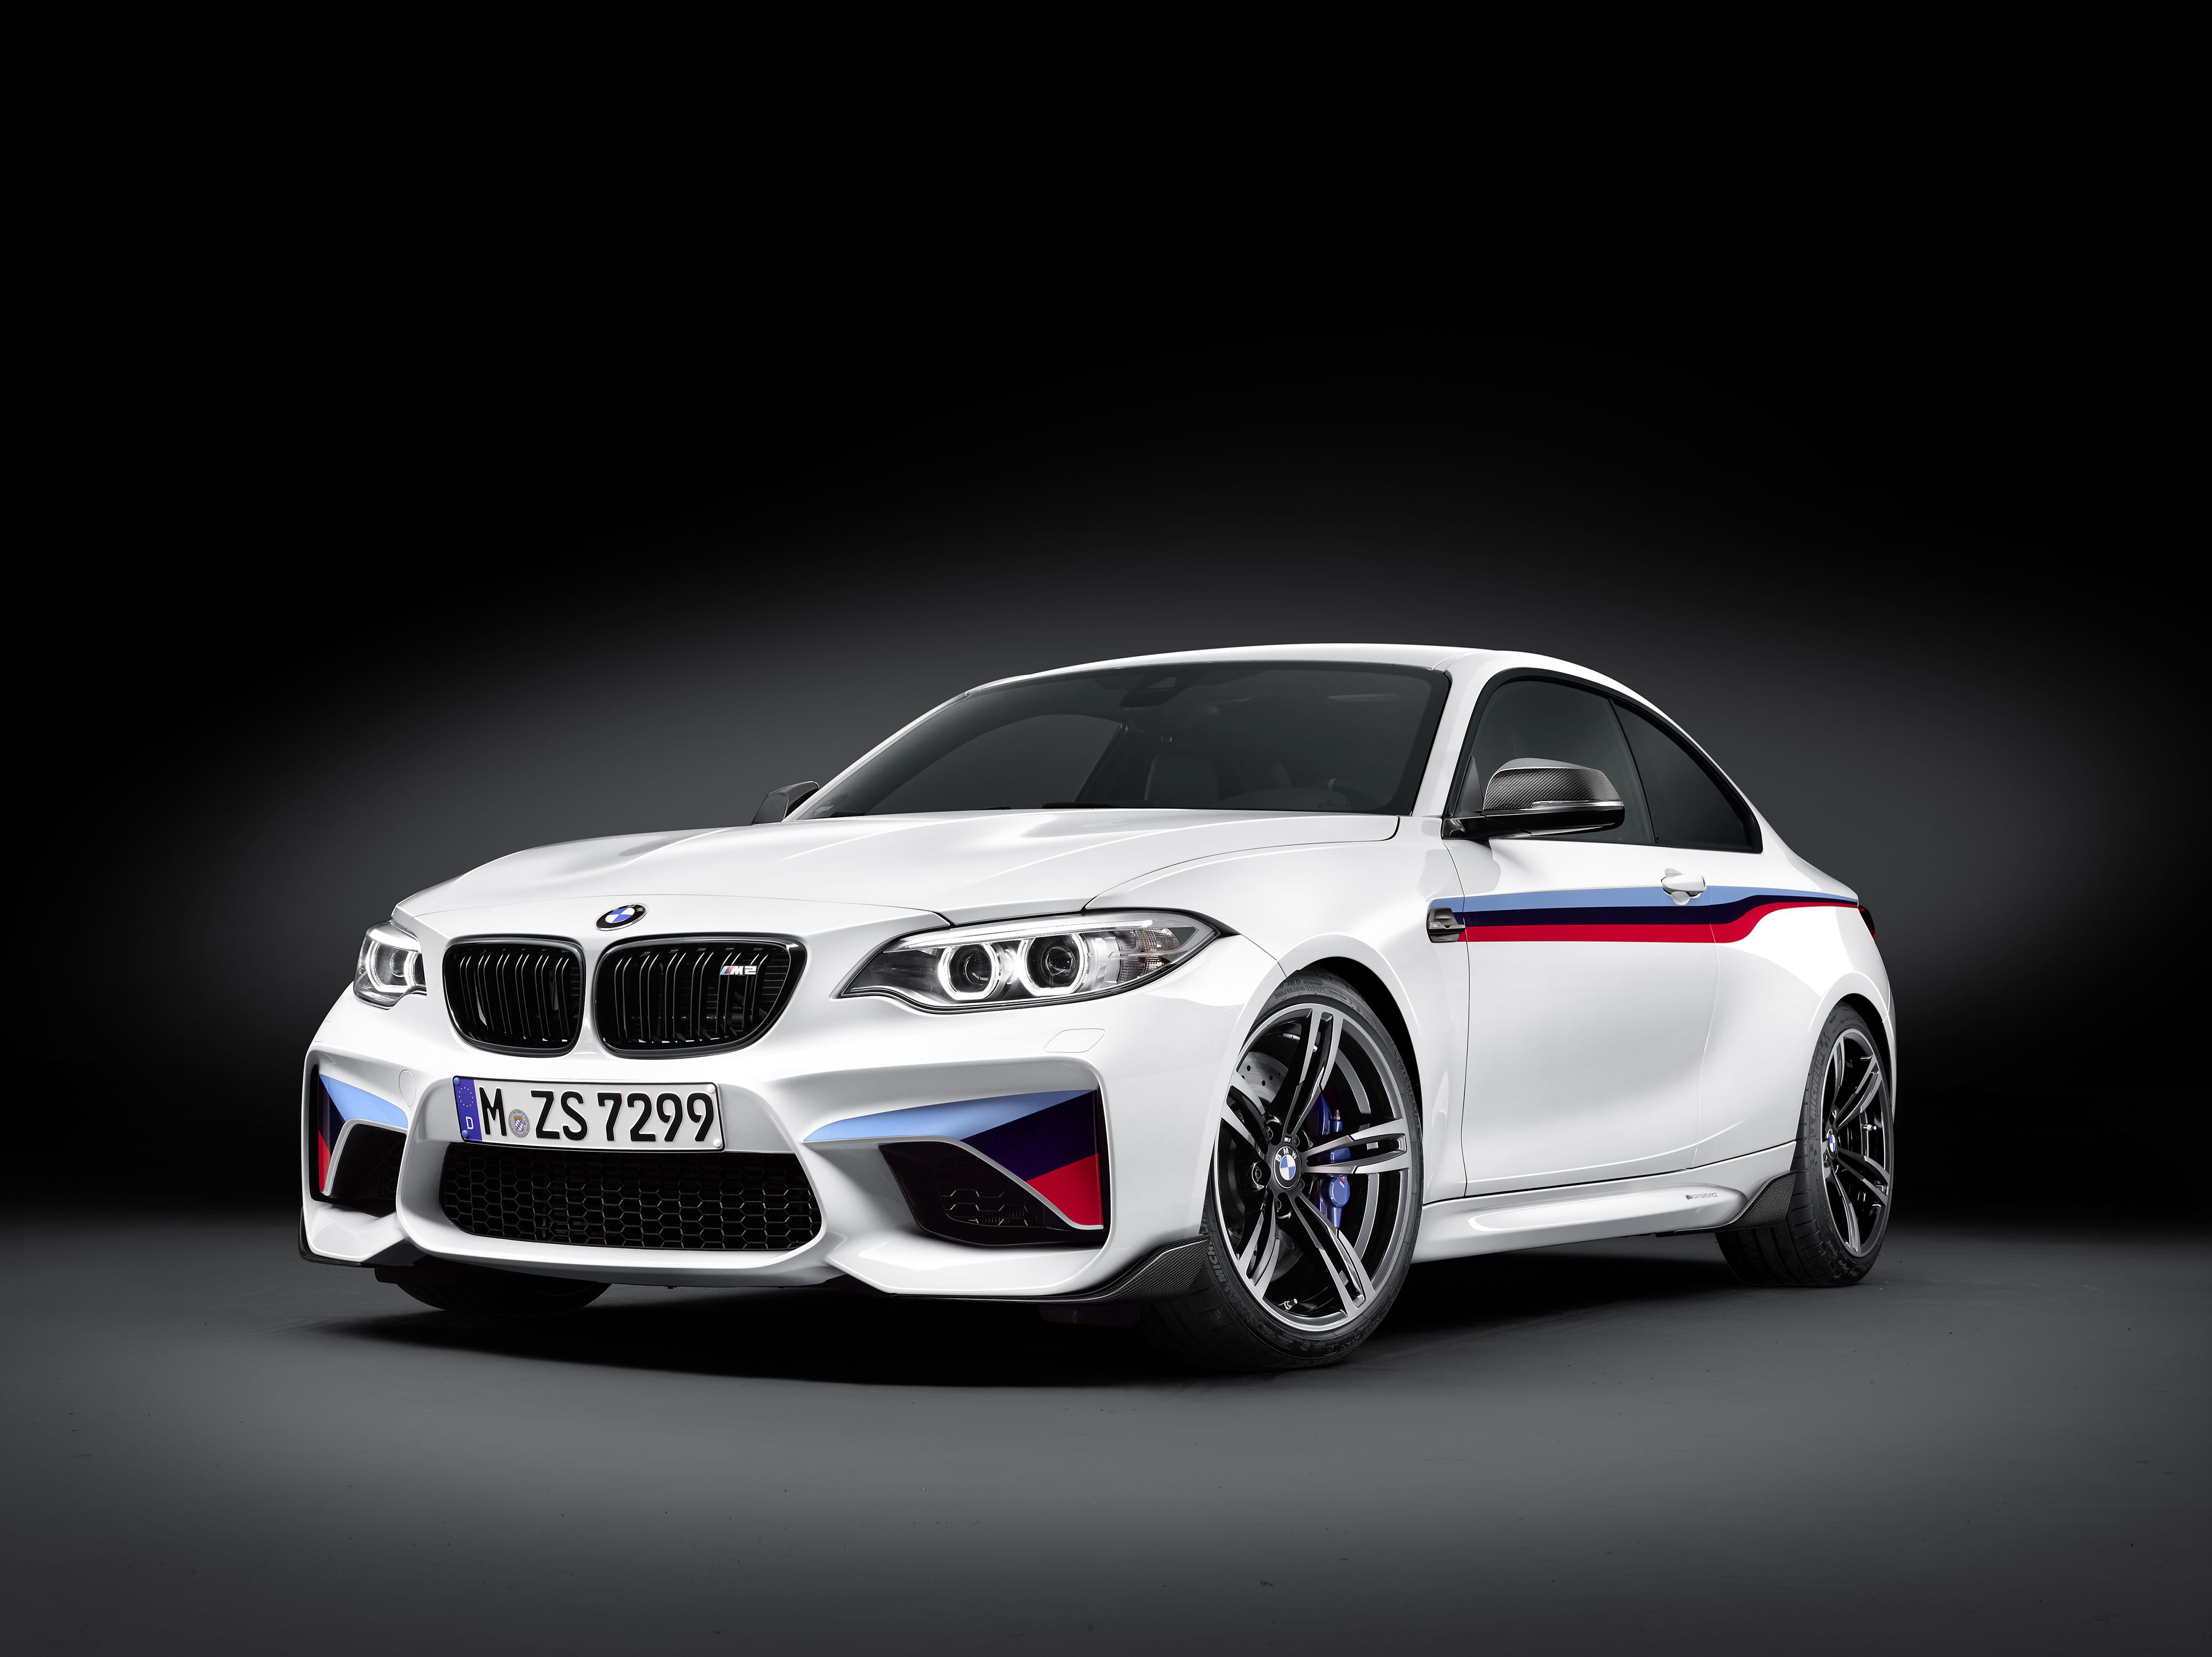 Bmw m performance parts to be available for new coupe starting march